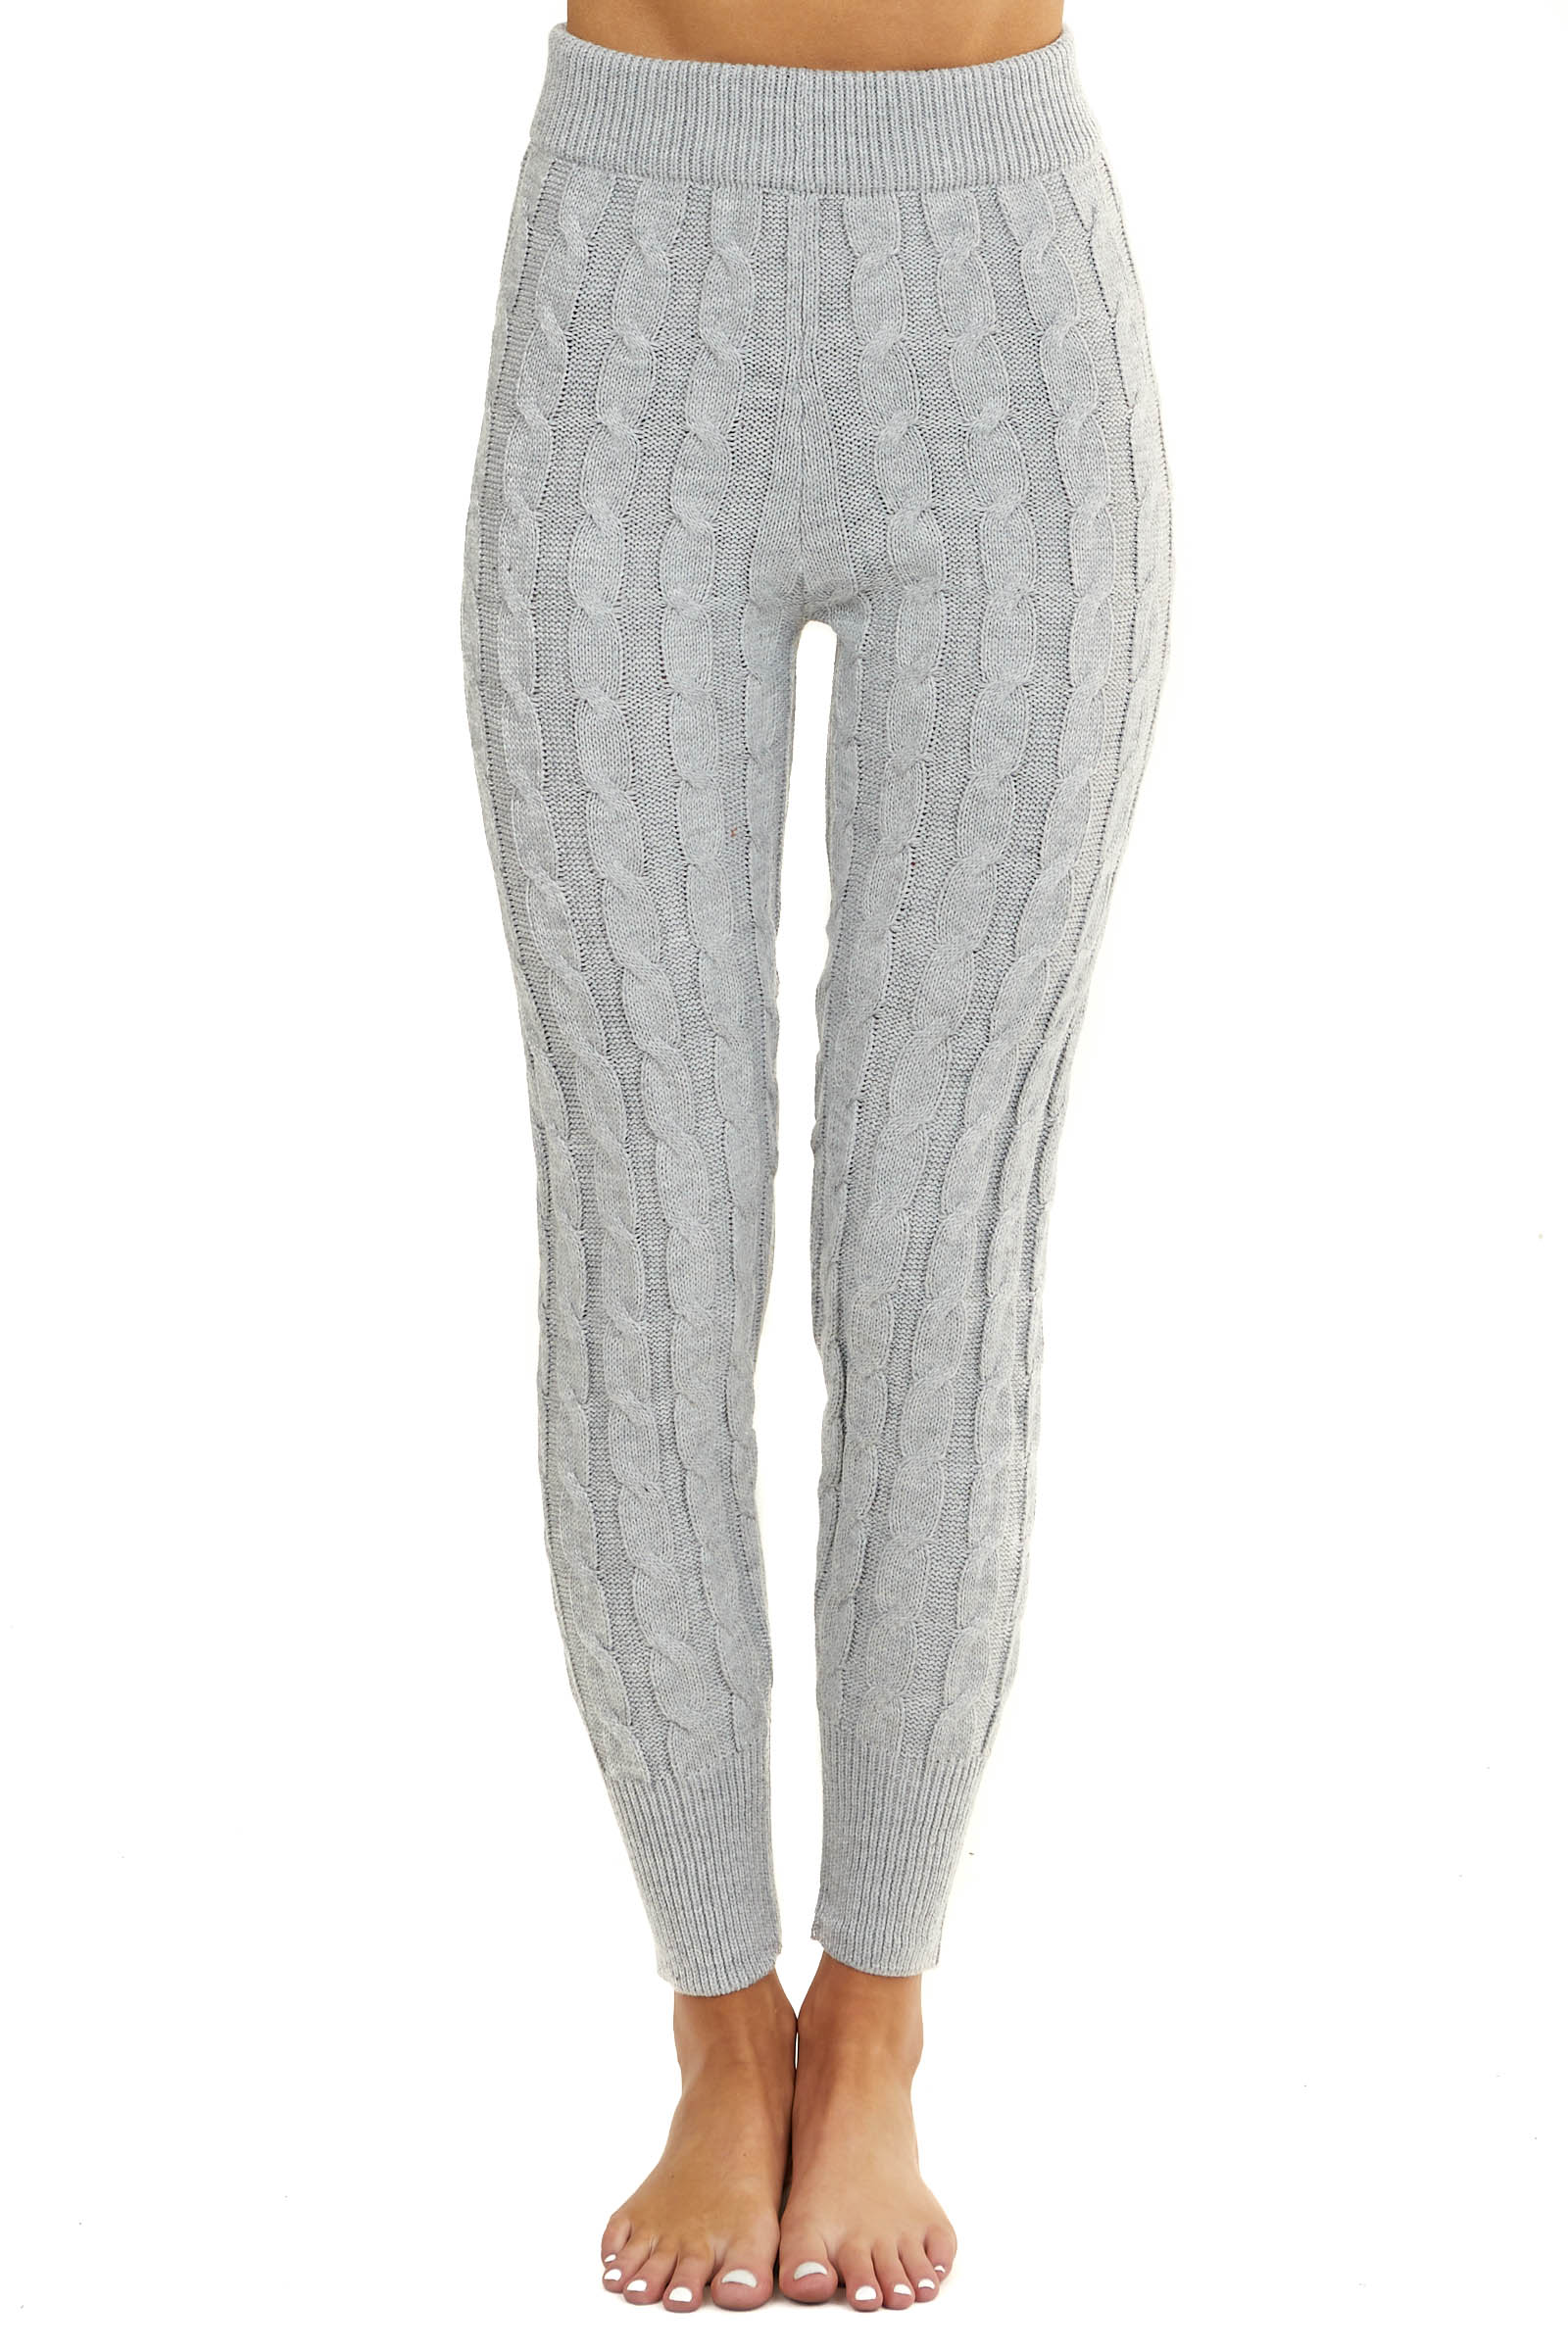 Heather Grey Cable Knit Leggings with Ribbed Hem